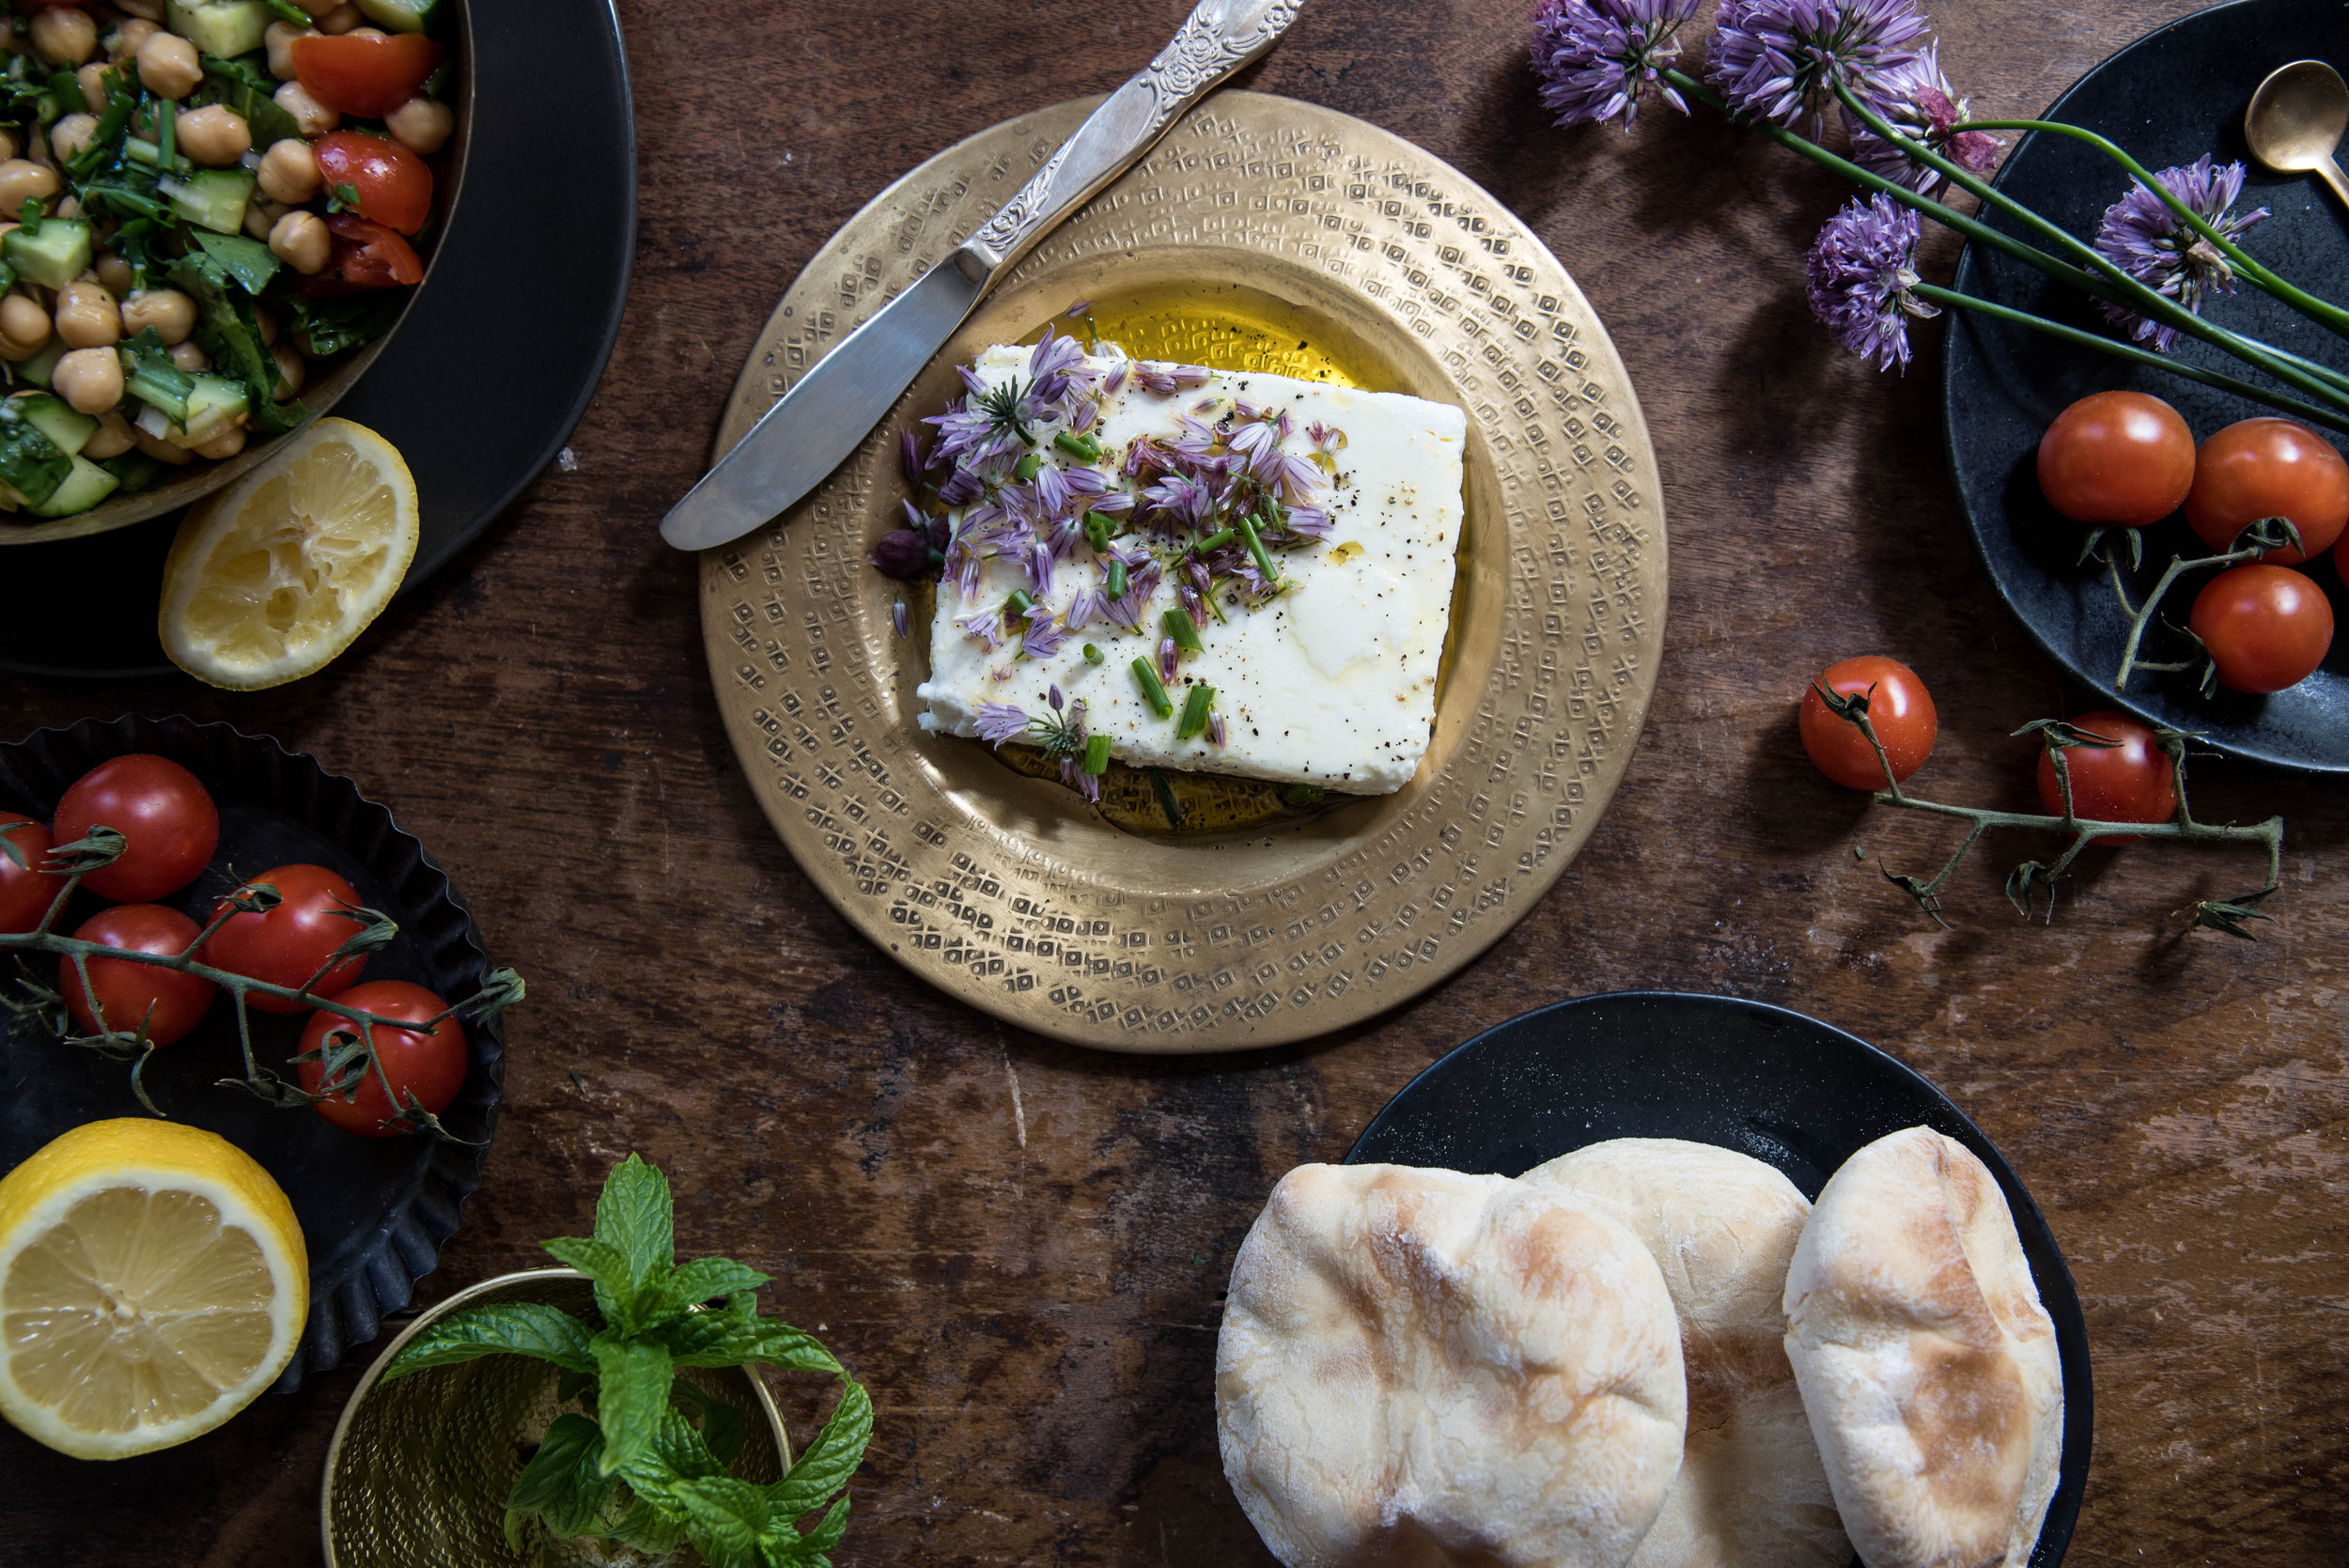 ROSE & IVY Journal Middle Eastern Spread from The Palomar Cookbook